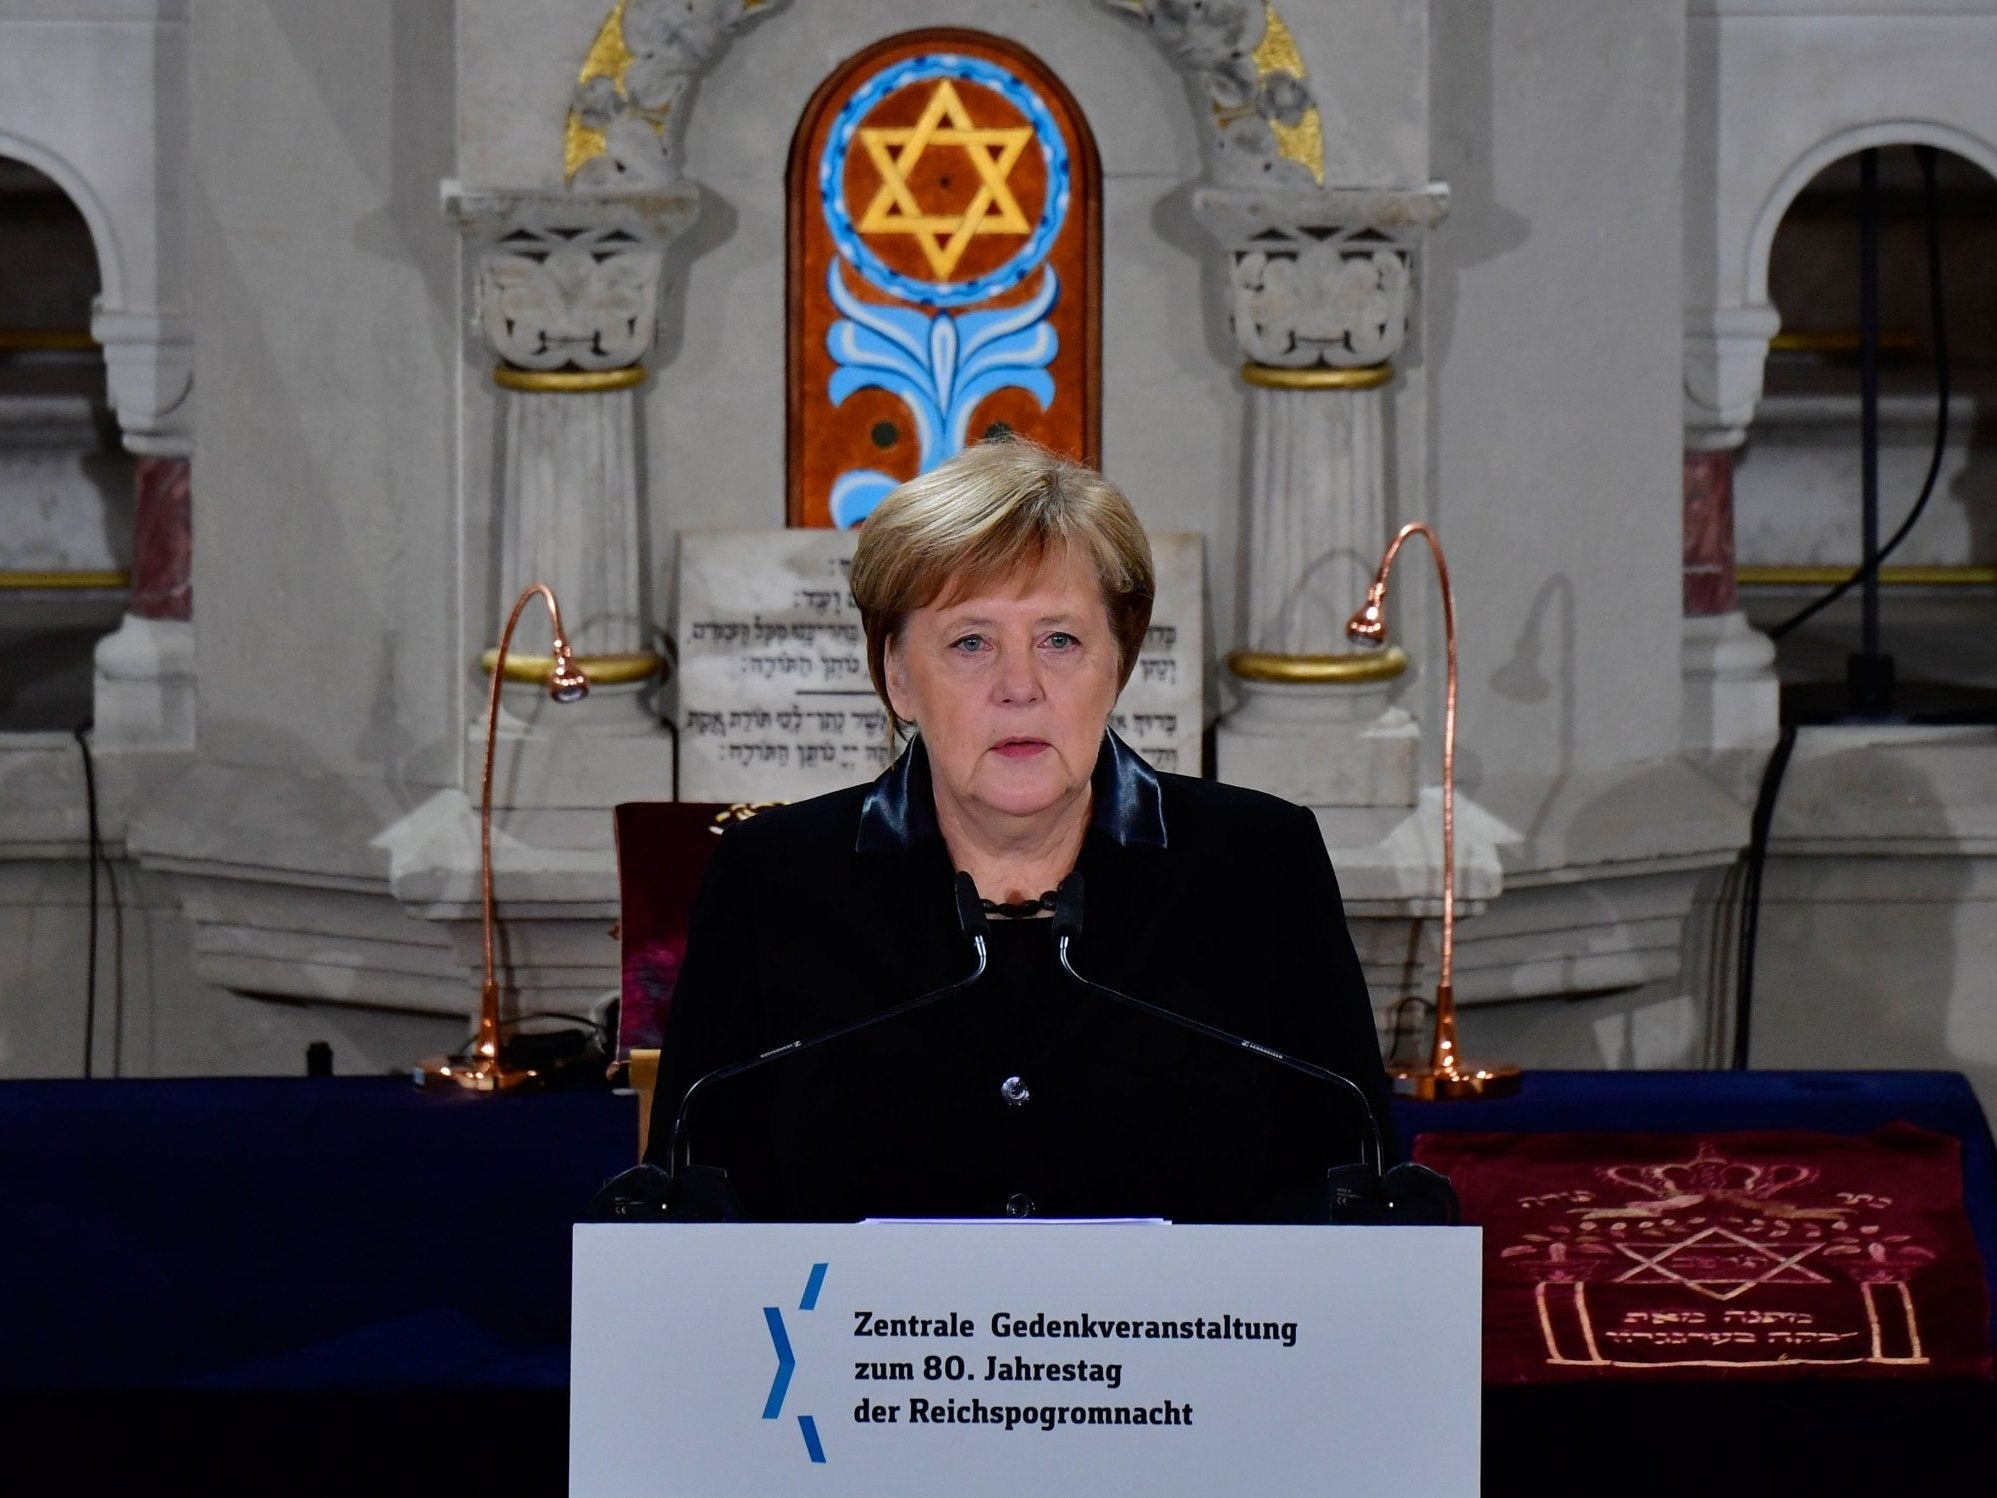 Angela Merkel addresses Kristallnacht remembrance ceremony at Berlin synagogue